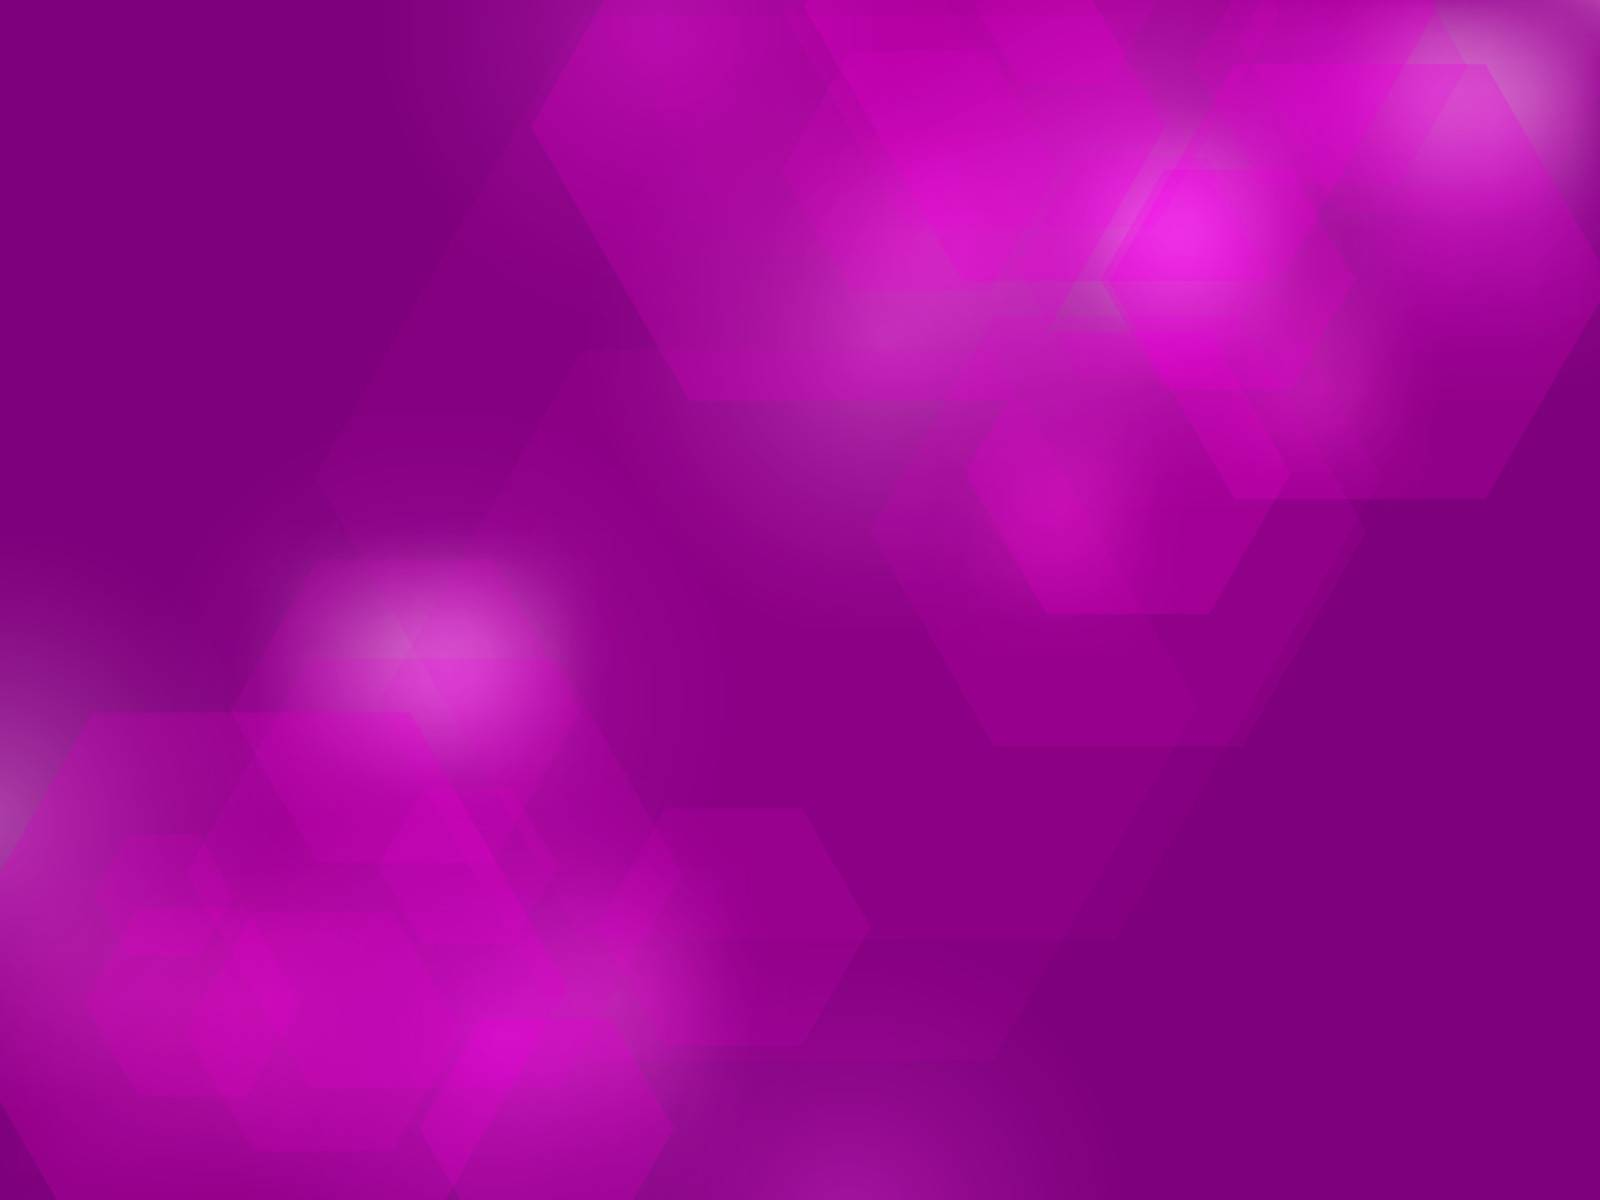 ilustration of abstract background with shapes in violet